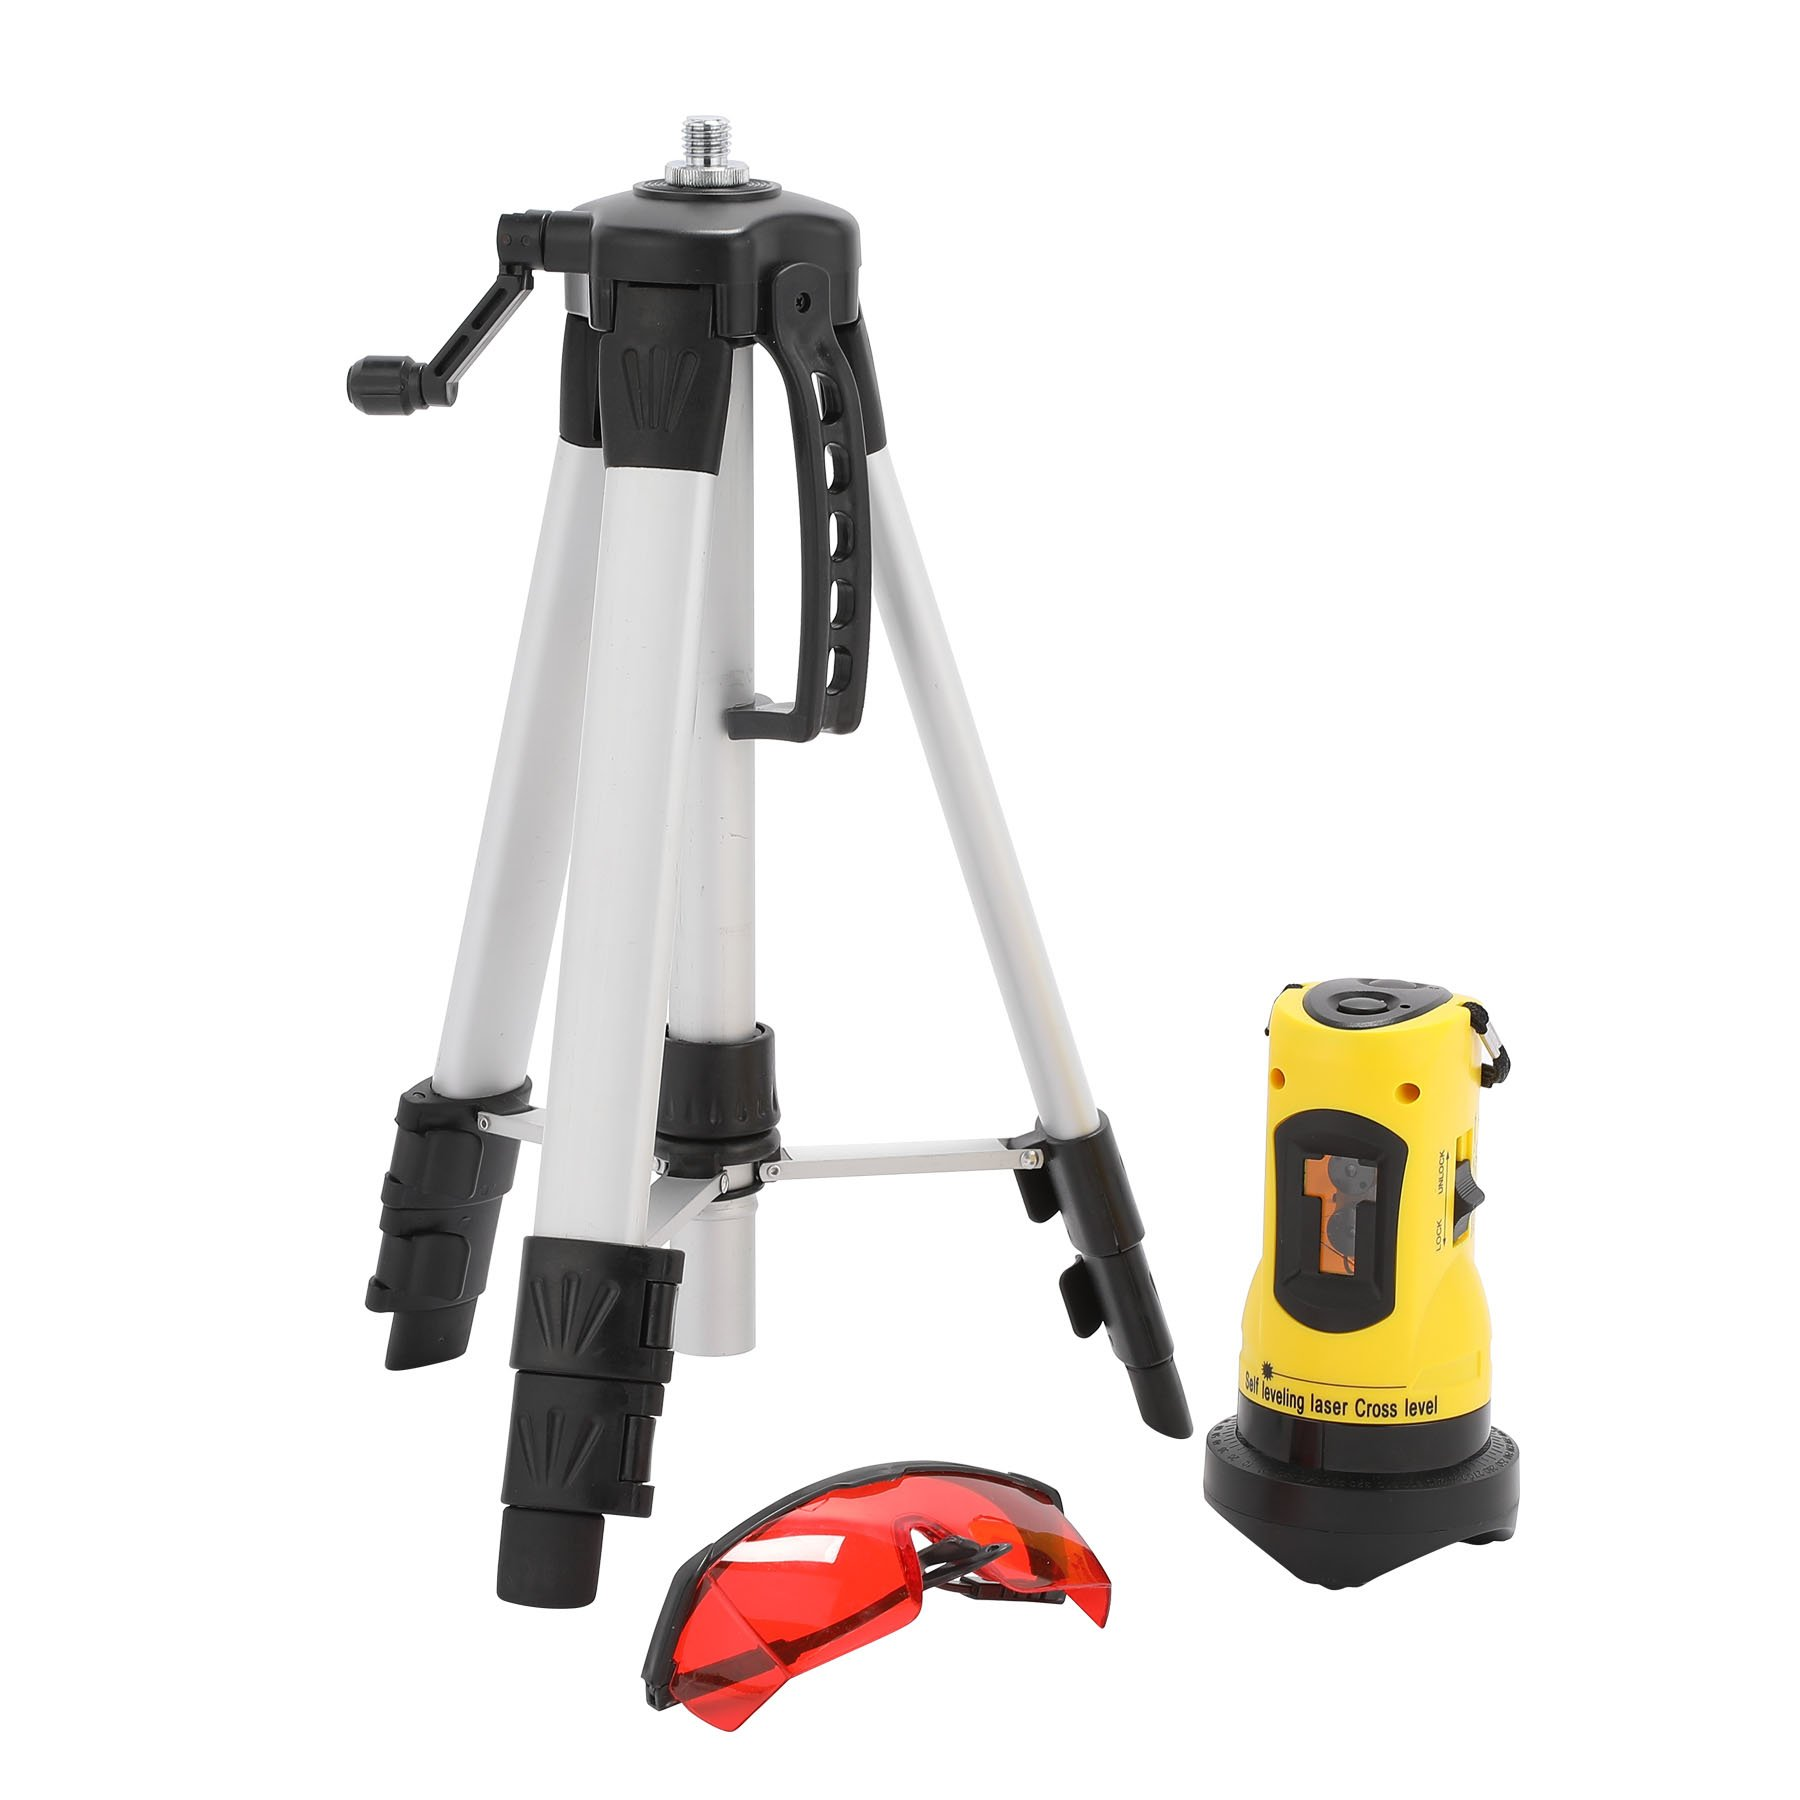 CO-Z Laser Level with Tripod, Auto Leveling Kit Combo with Horizontal/Vertical/ Cross-Line, Dual-module Self-Leveling Tool Set for Builders & Contractors by CO-Z (Image #2)